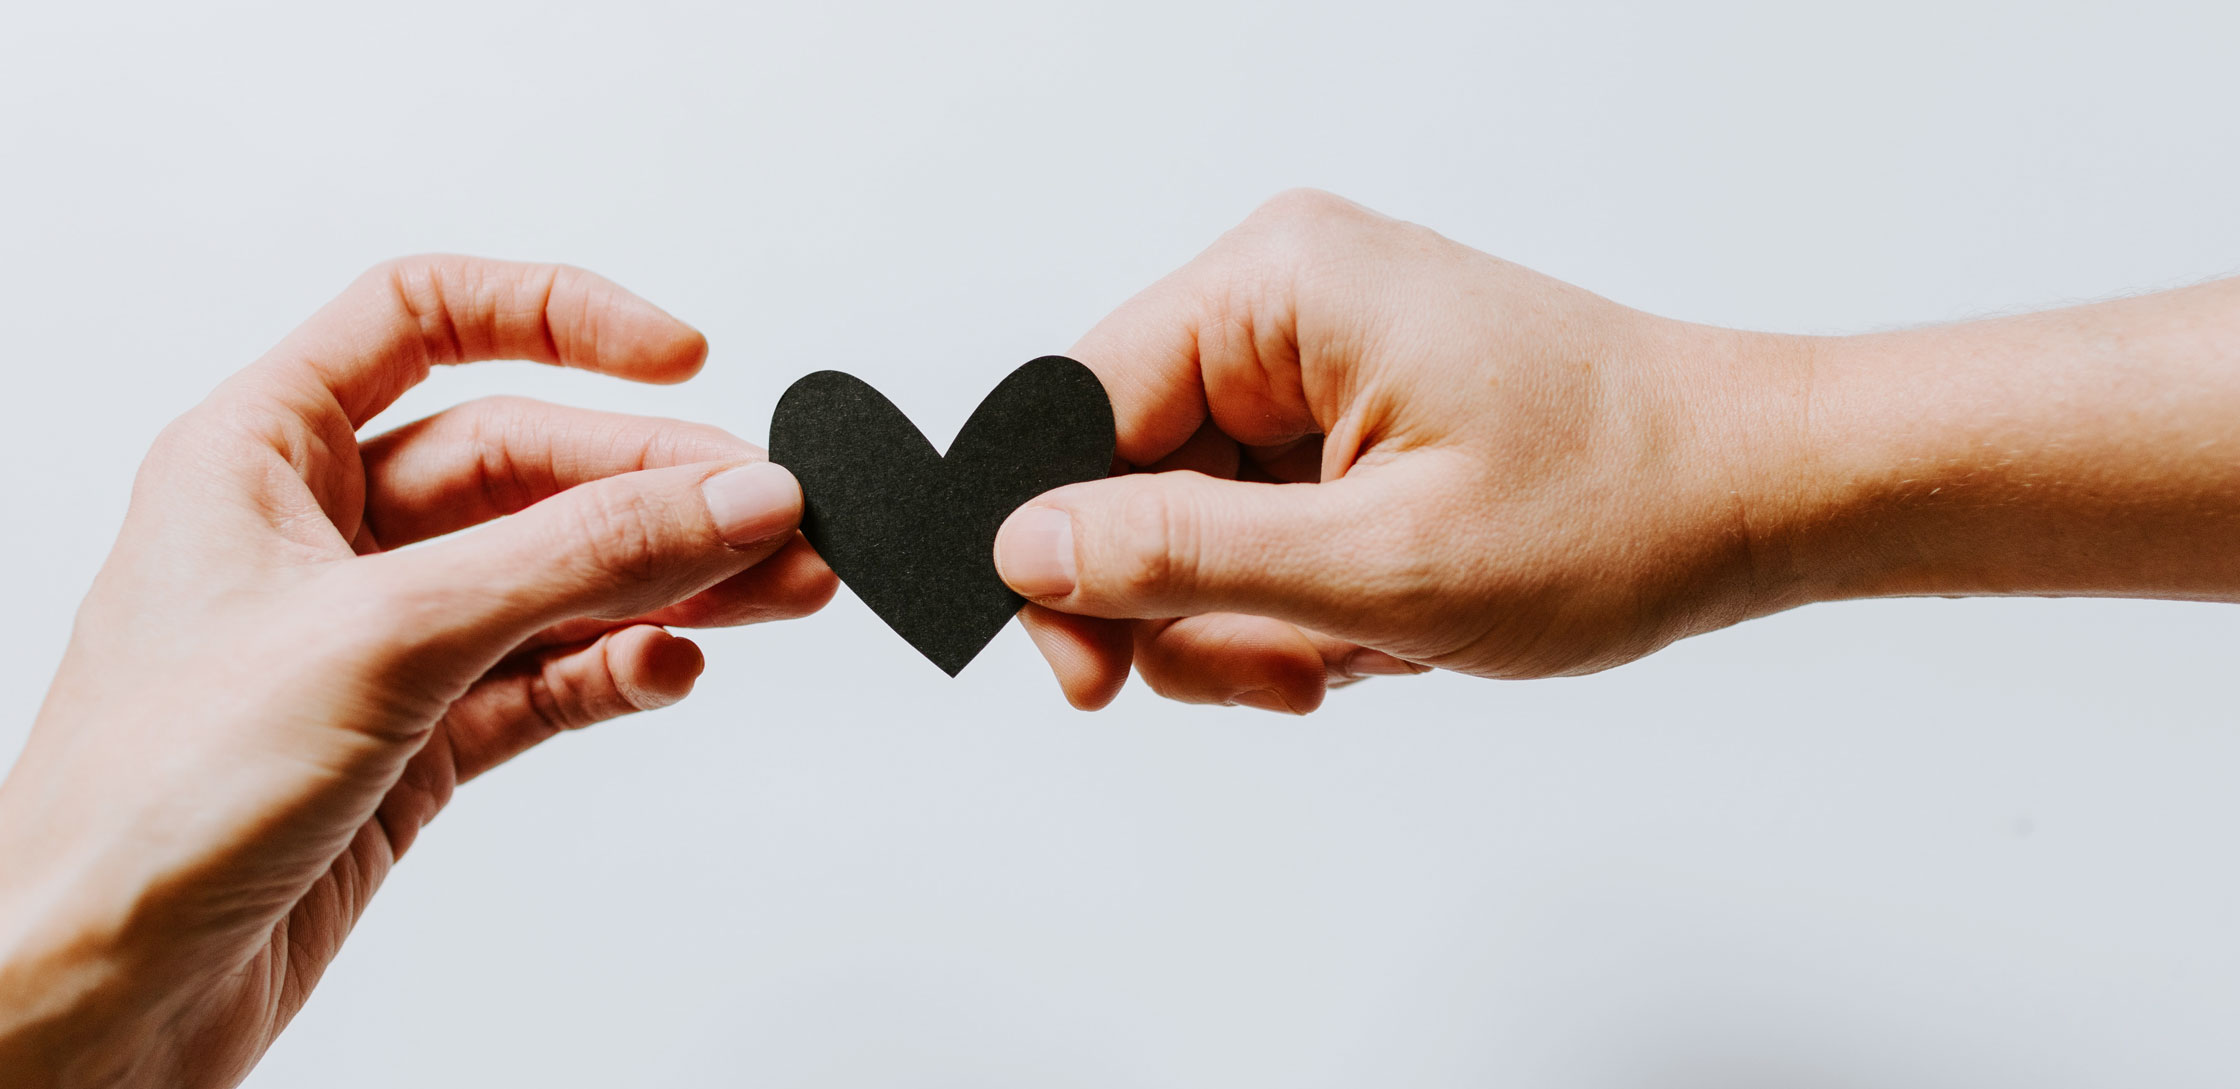 Holding black paper heart in two hands